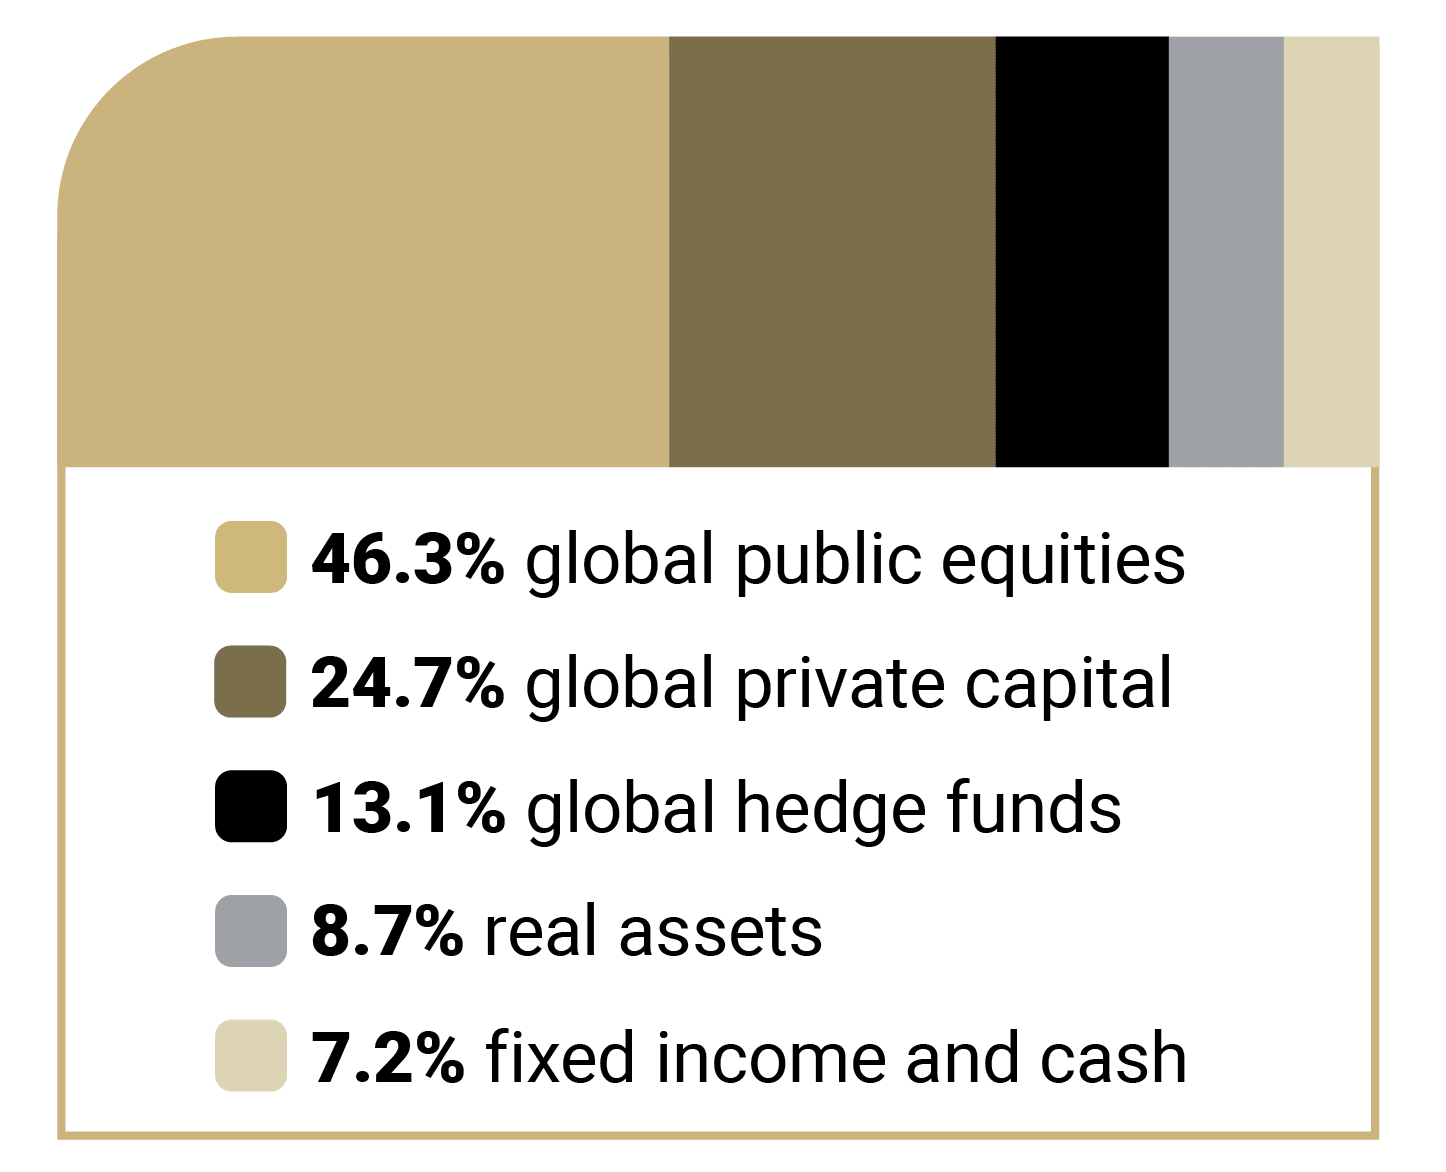 This is a chart that shows how the LTIP is invested in asset classes. 46.3% for global public equities, $24.7% for global private capital, 13.1% for global hedge funds, 8.7% for real assets and 7.2% for fixed income and cash.